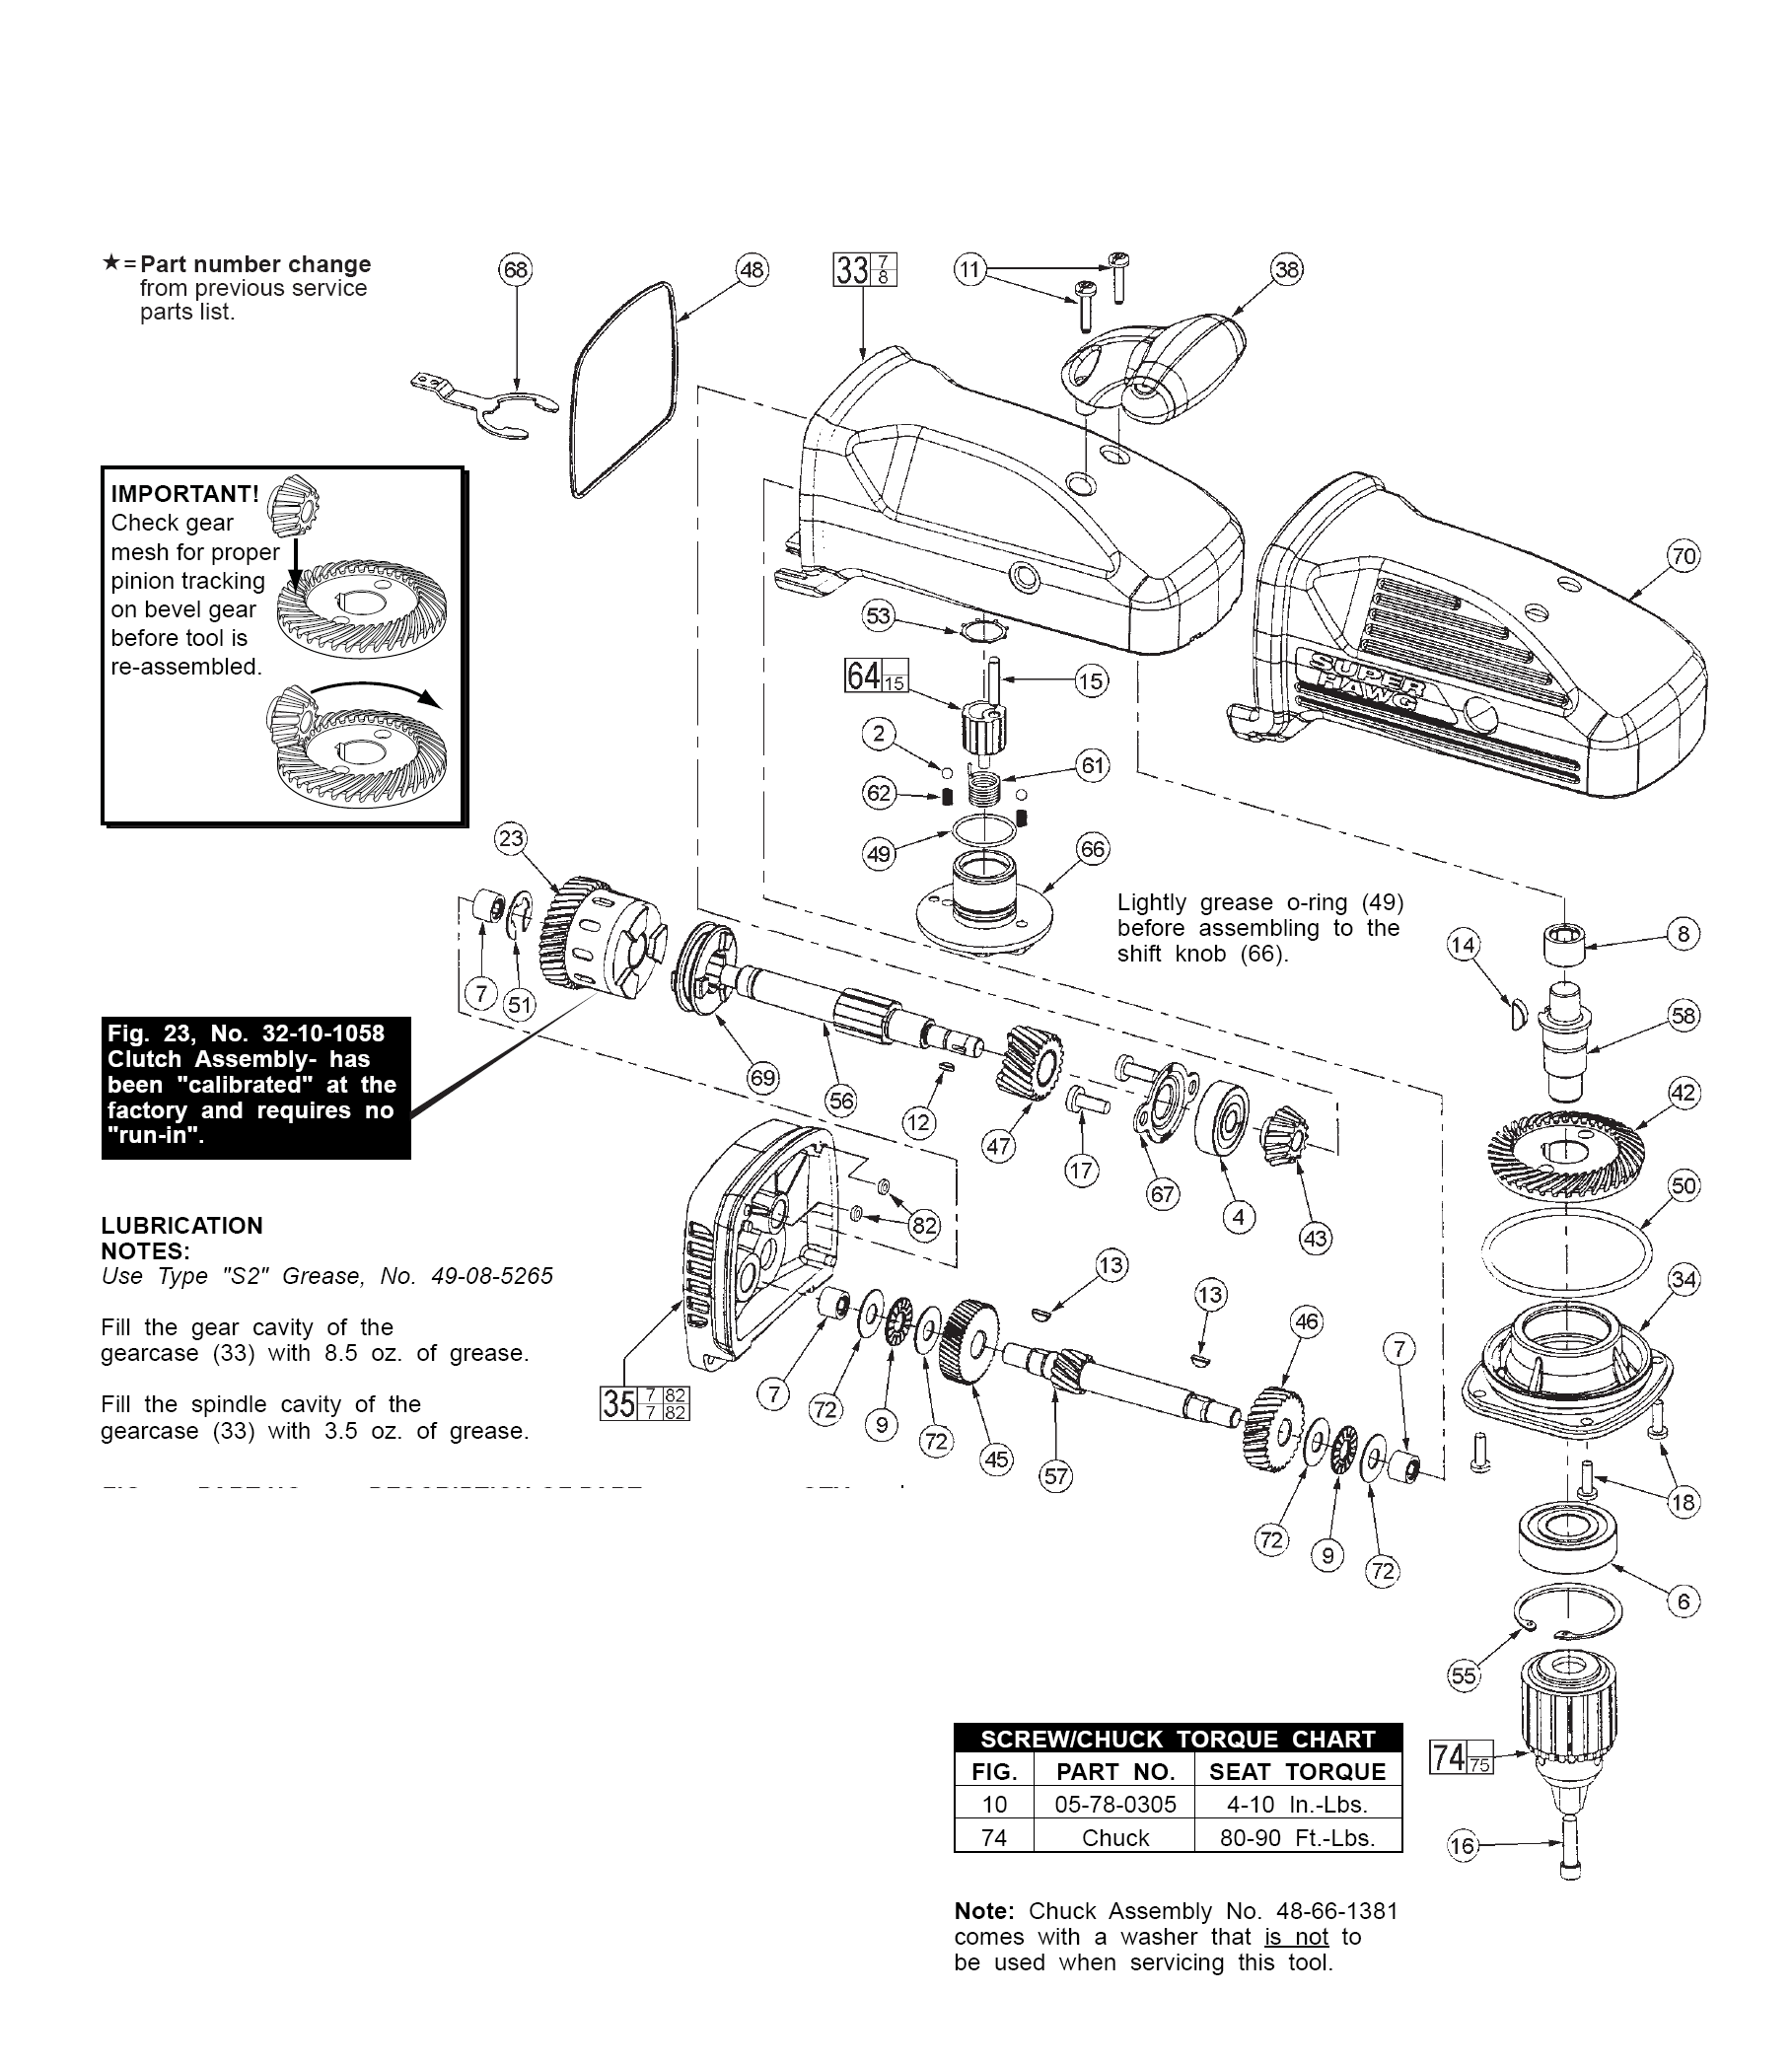 1680-21-(407B)-Milwaukee-PB-1Break Down